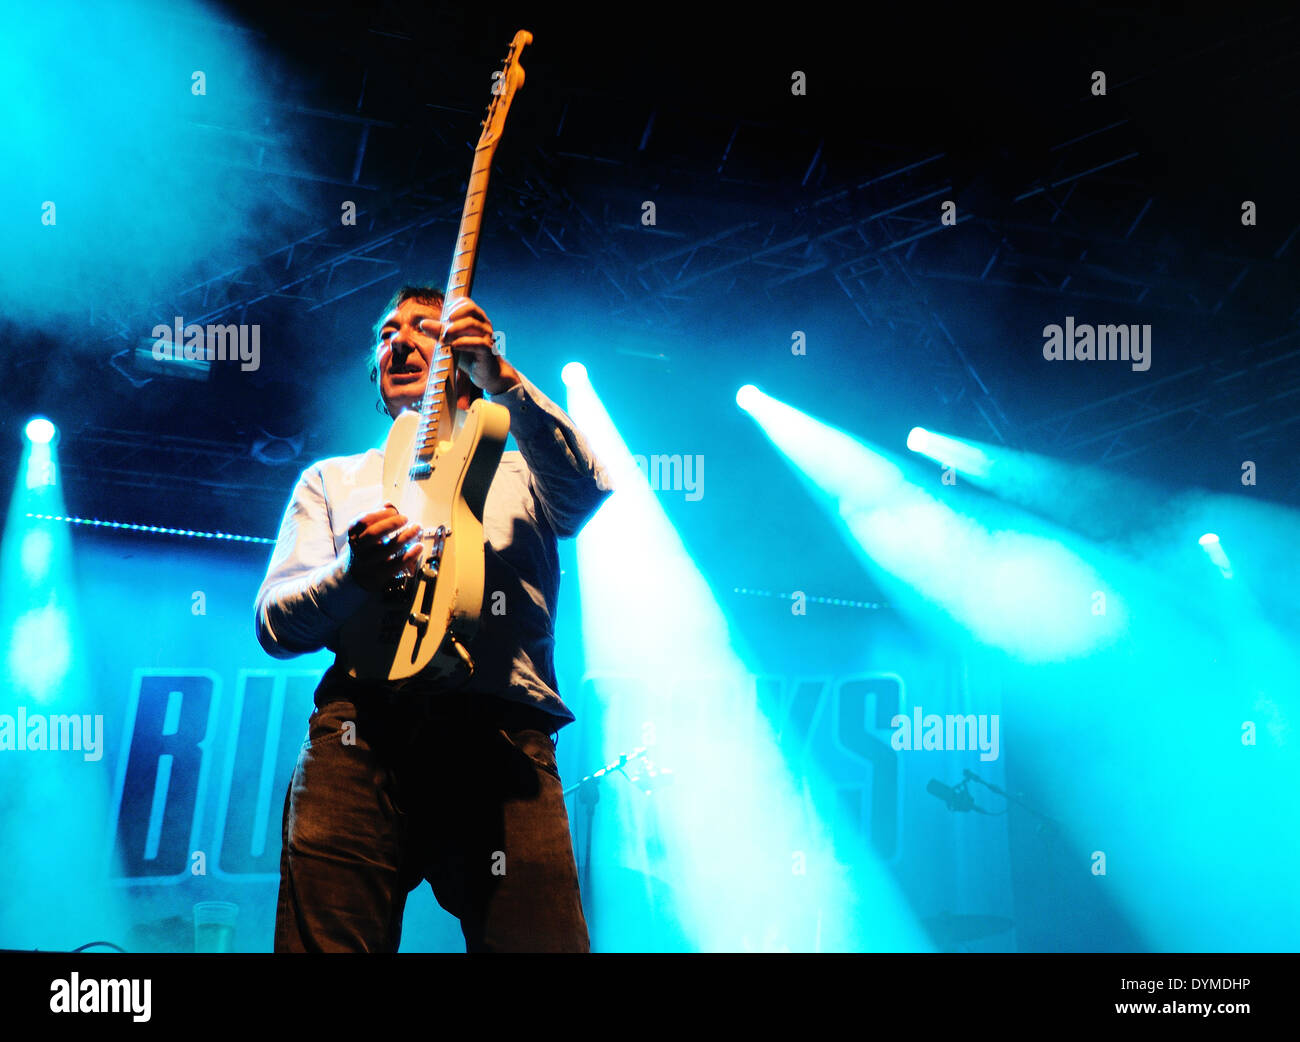 BENICASSIM, SPAIN - JULY 14: Buzzcocks (English punk rock band) performs at FIB on July 14, 2012 in Benicassim, Spain. Festival - Stock Image